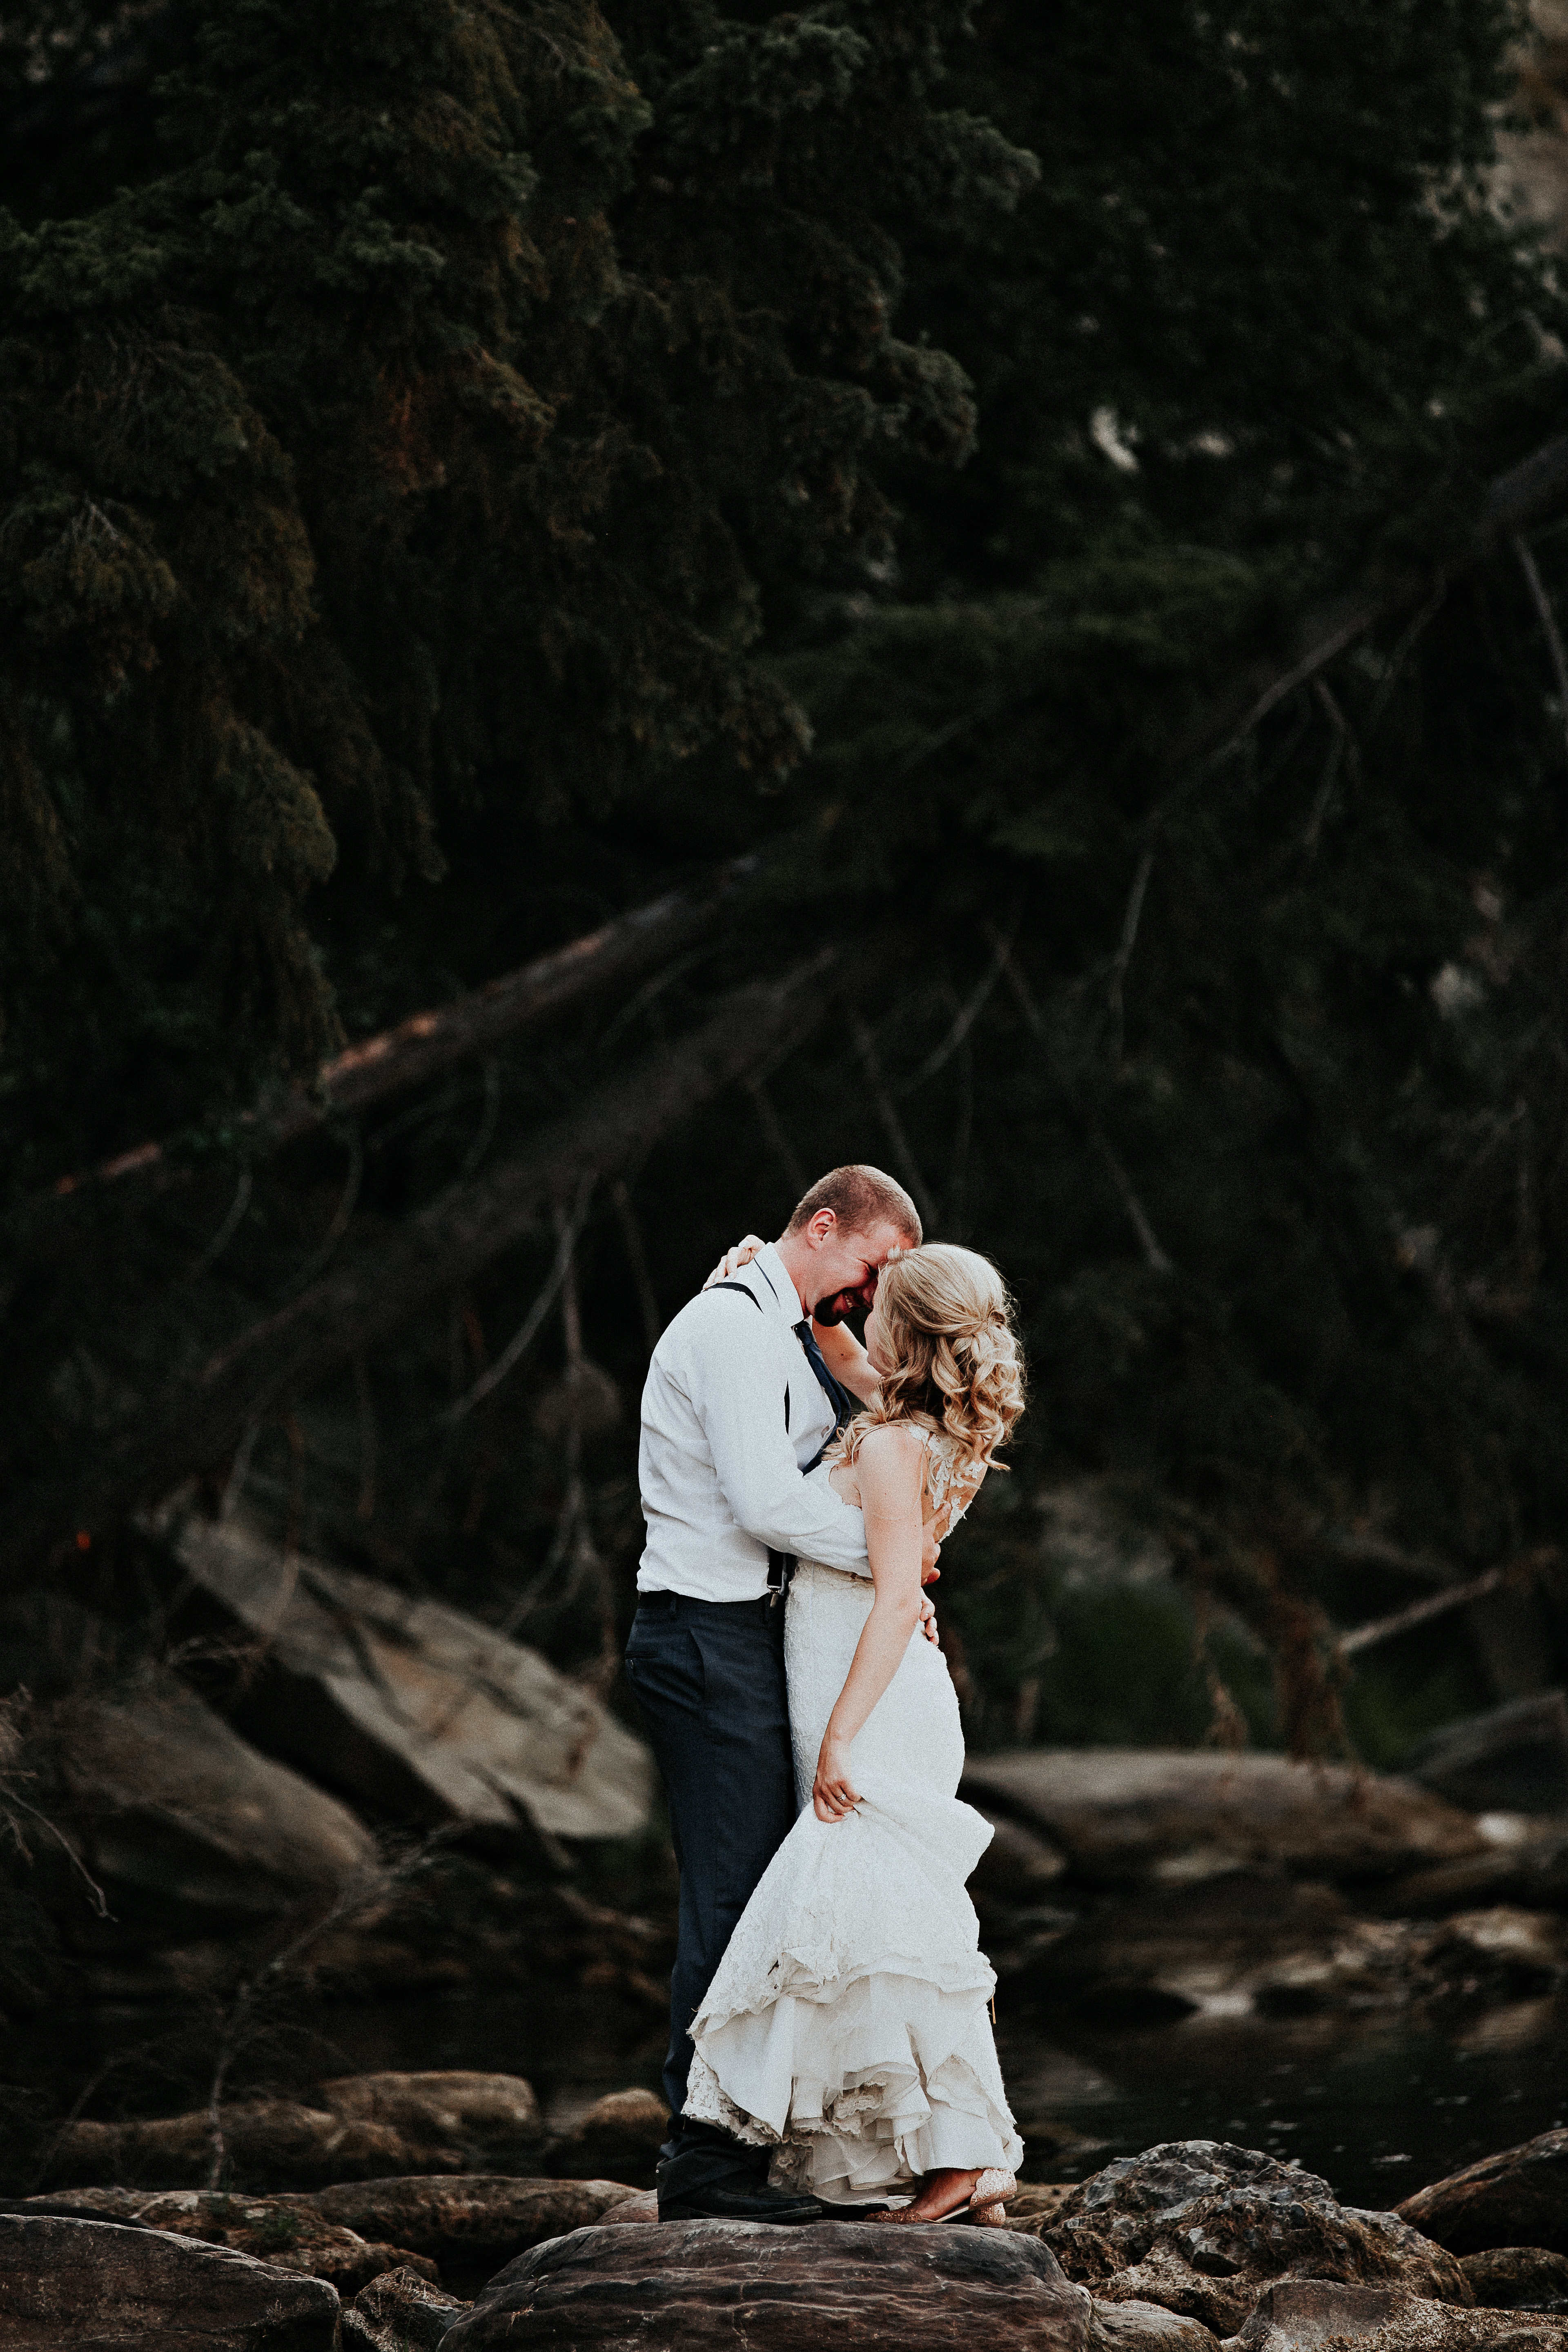 adventure photographer, wedding photographers calgary, adventure wedding